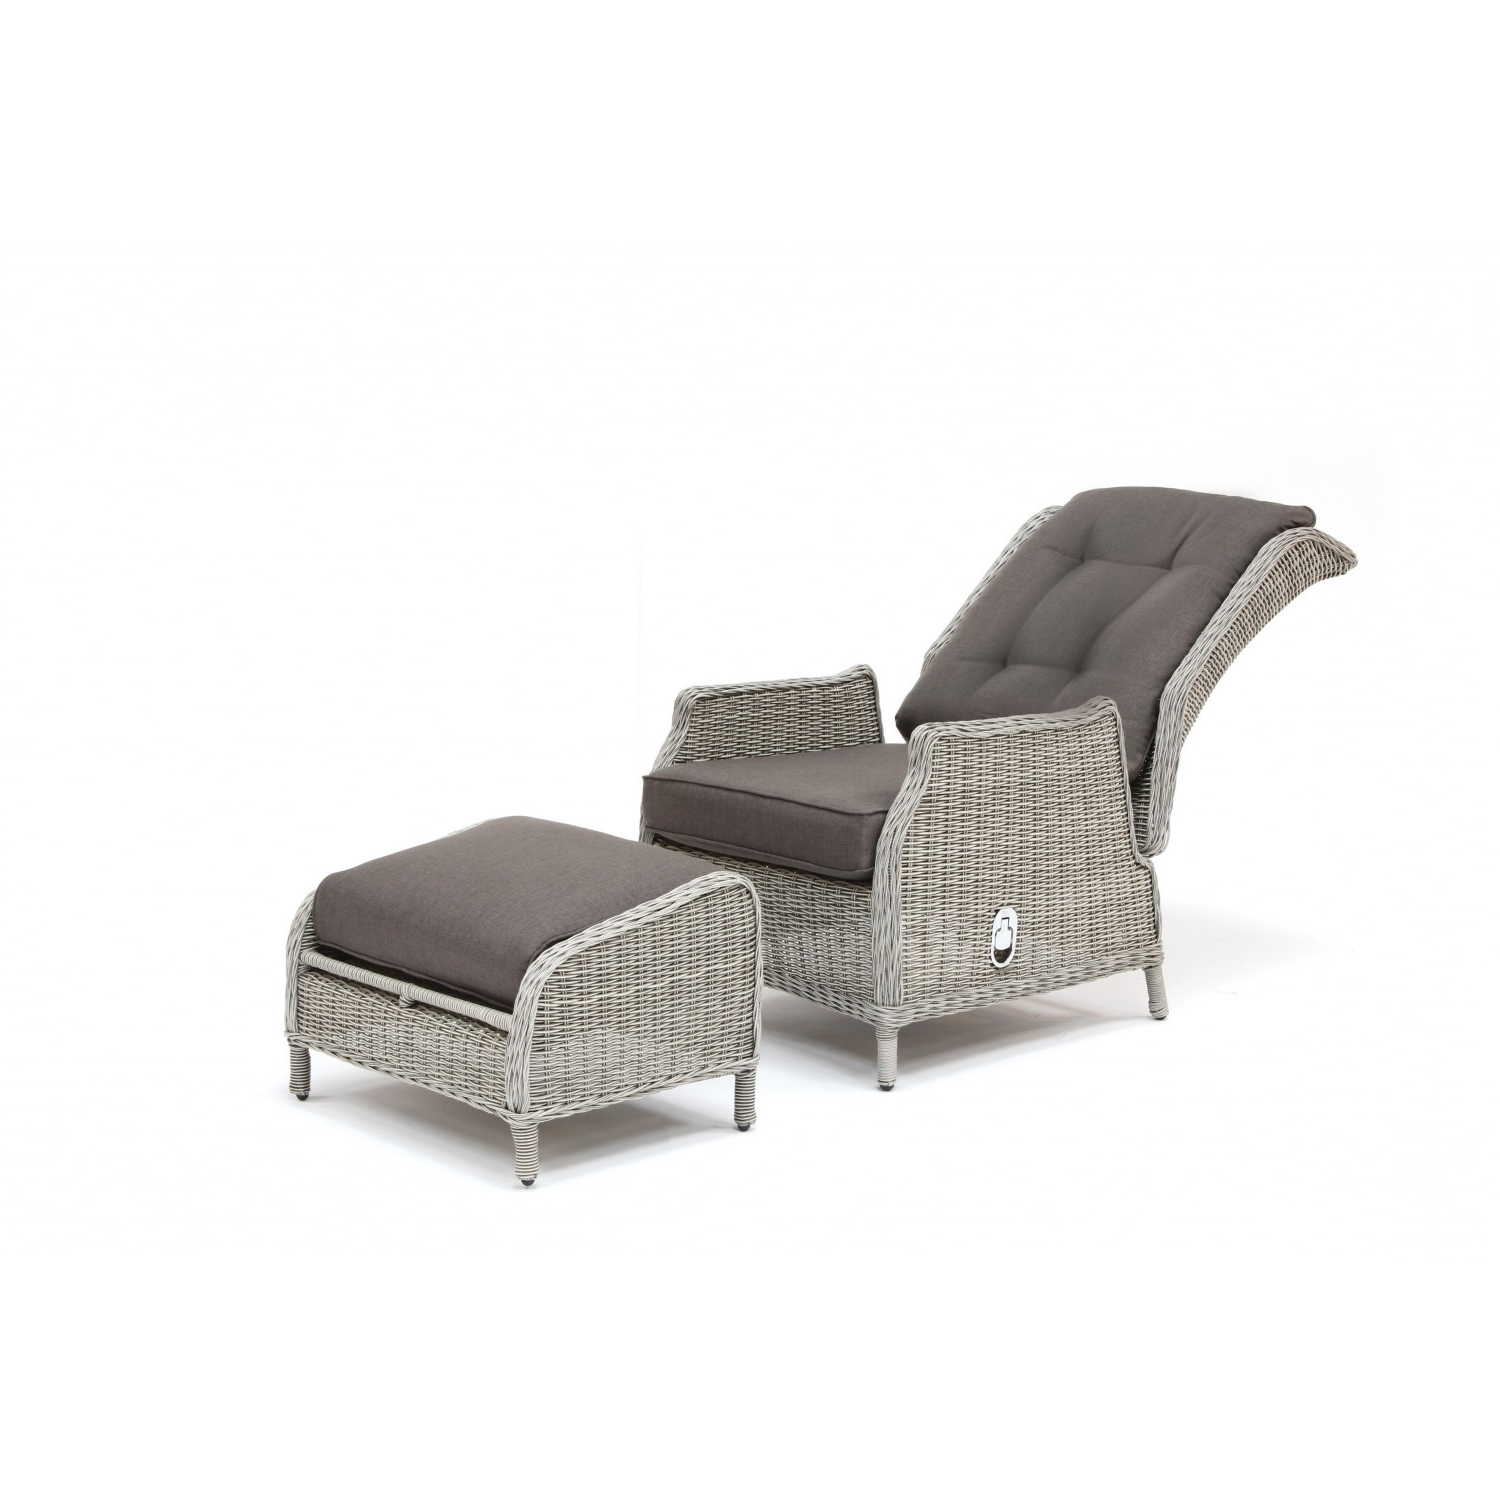 Kettler Jarvis Recliner With Footstool – White Wash Inc Taupe Cushions Pertaining To Popular Kettler Chaise Lounge Chairs (View 11 of 15)